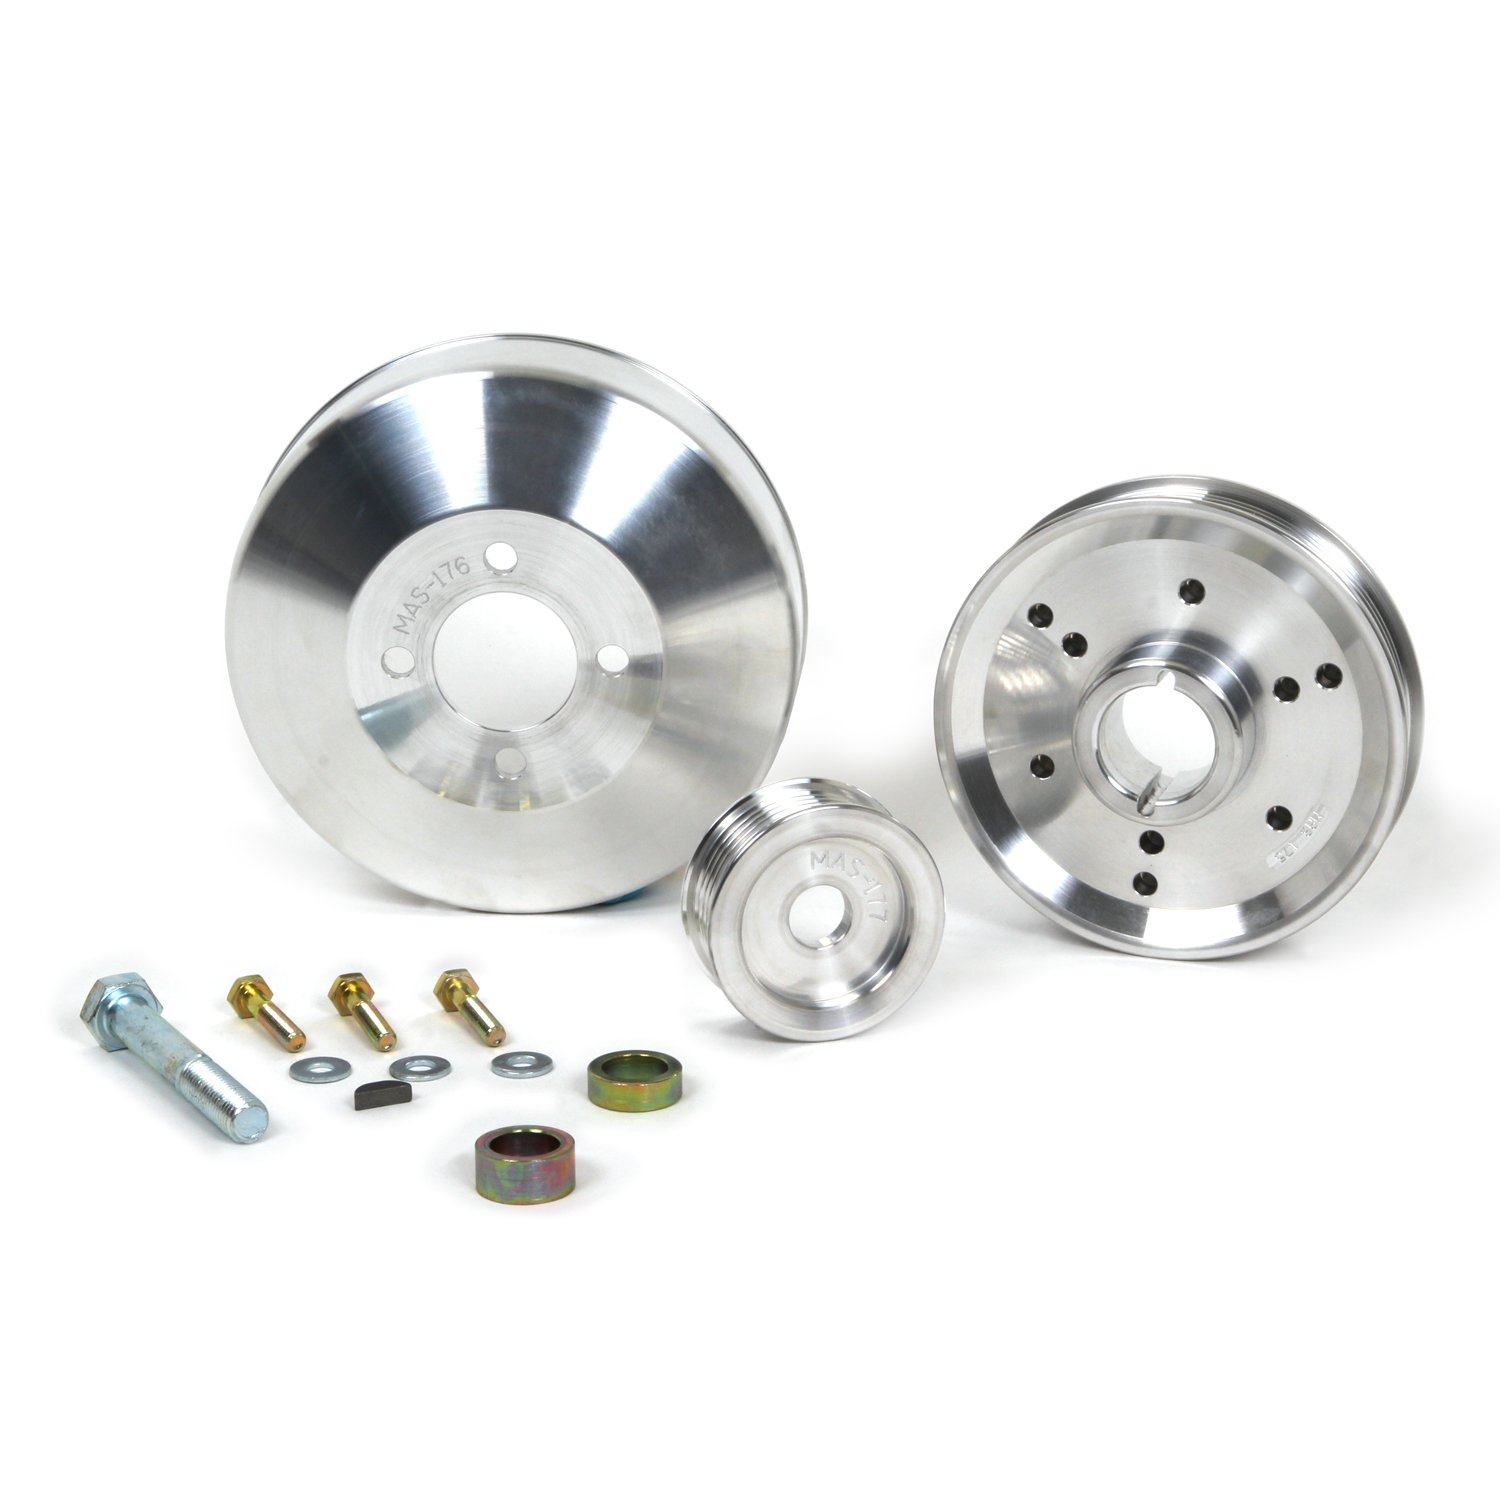 BBK 1555 Aluminum Underdrive Pulley Kit for Ford Mustang GT/Cobra 4.6L - 3 Piece